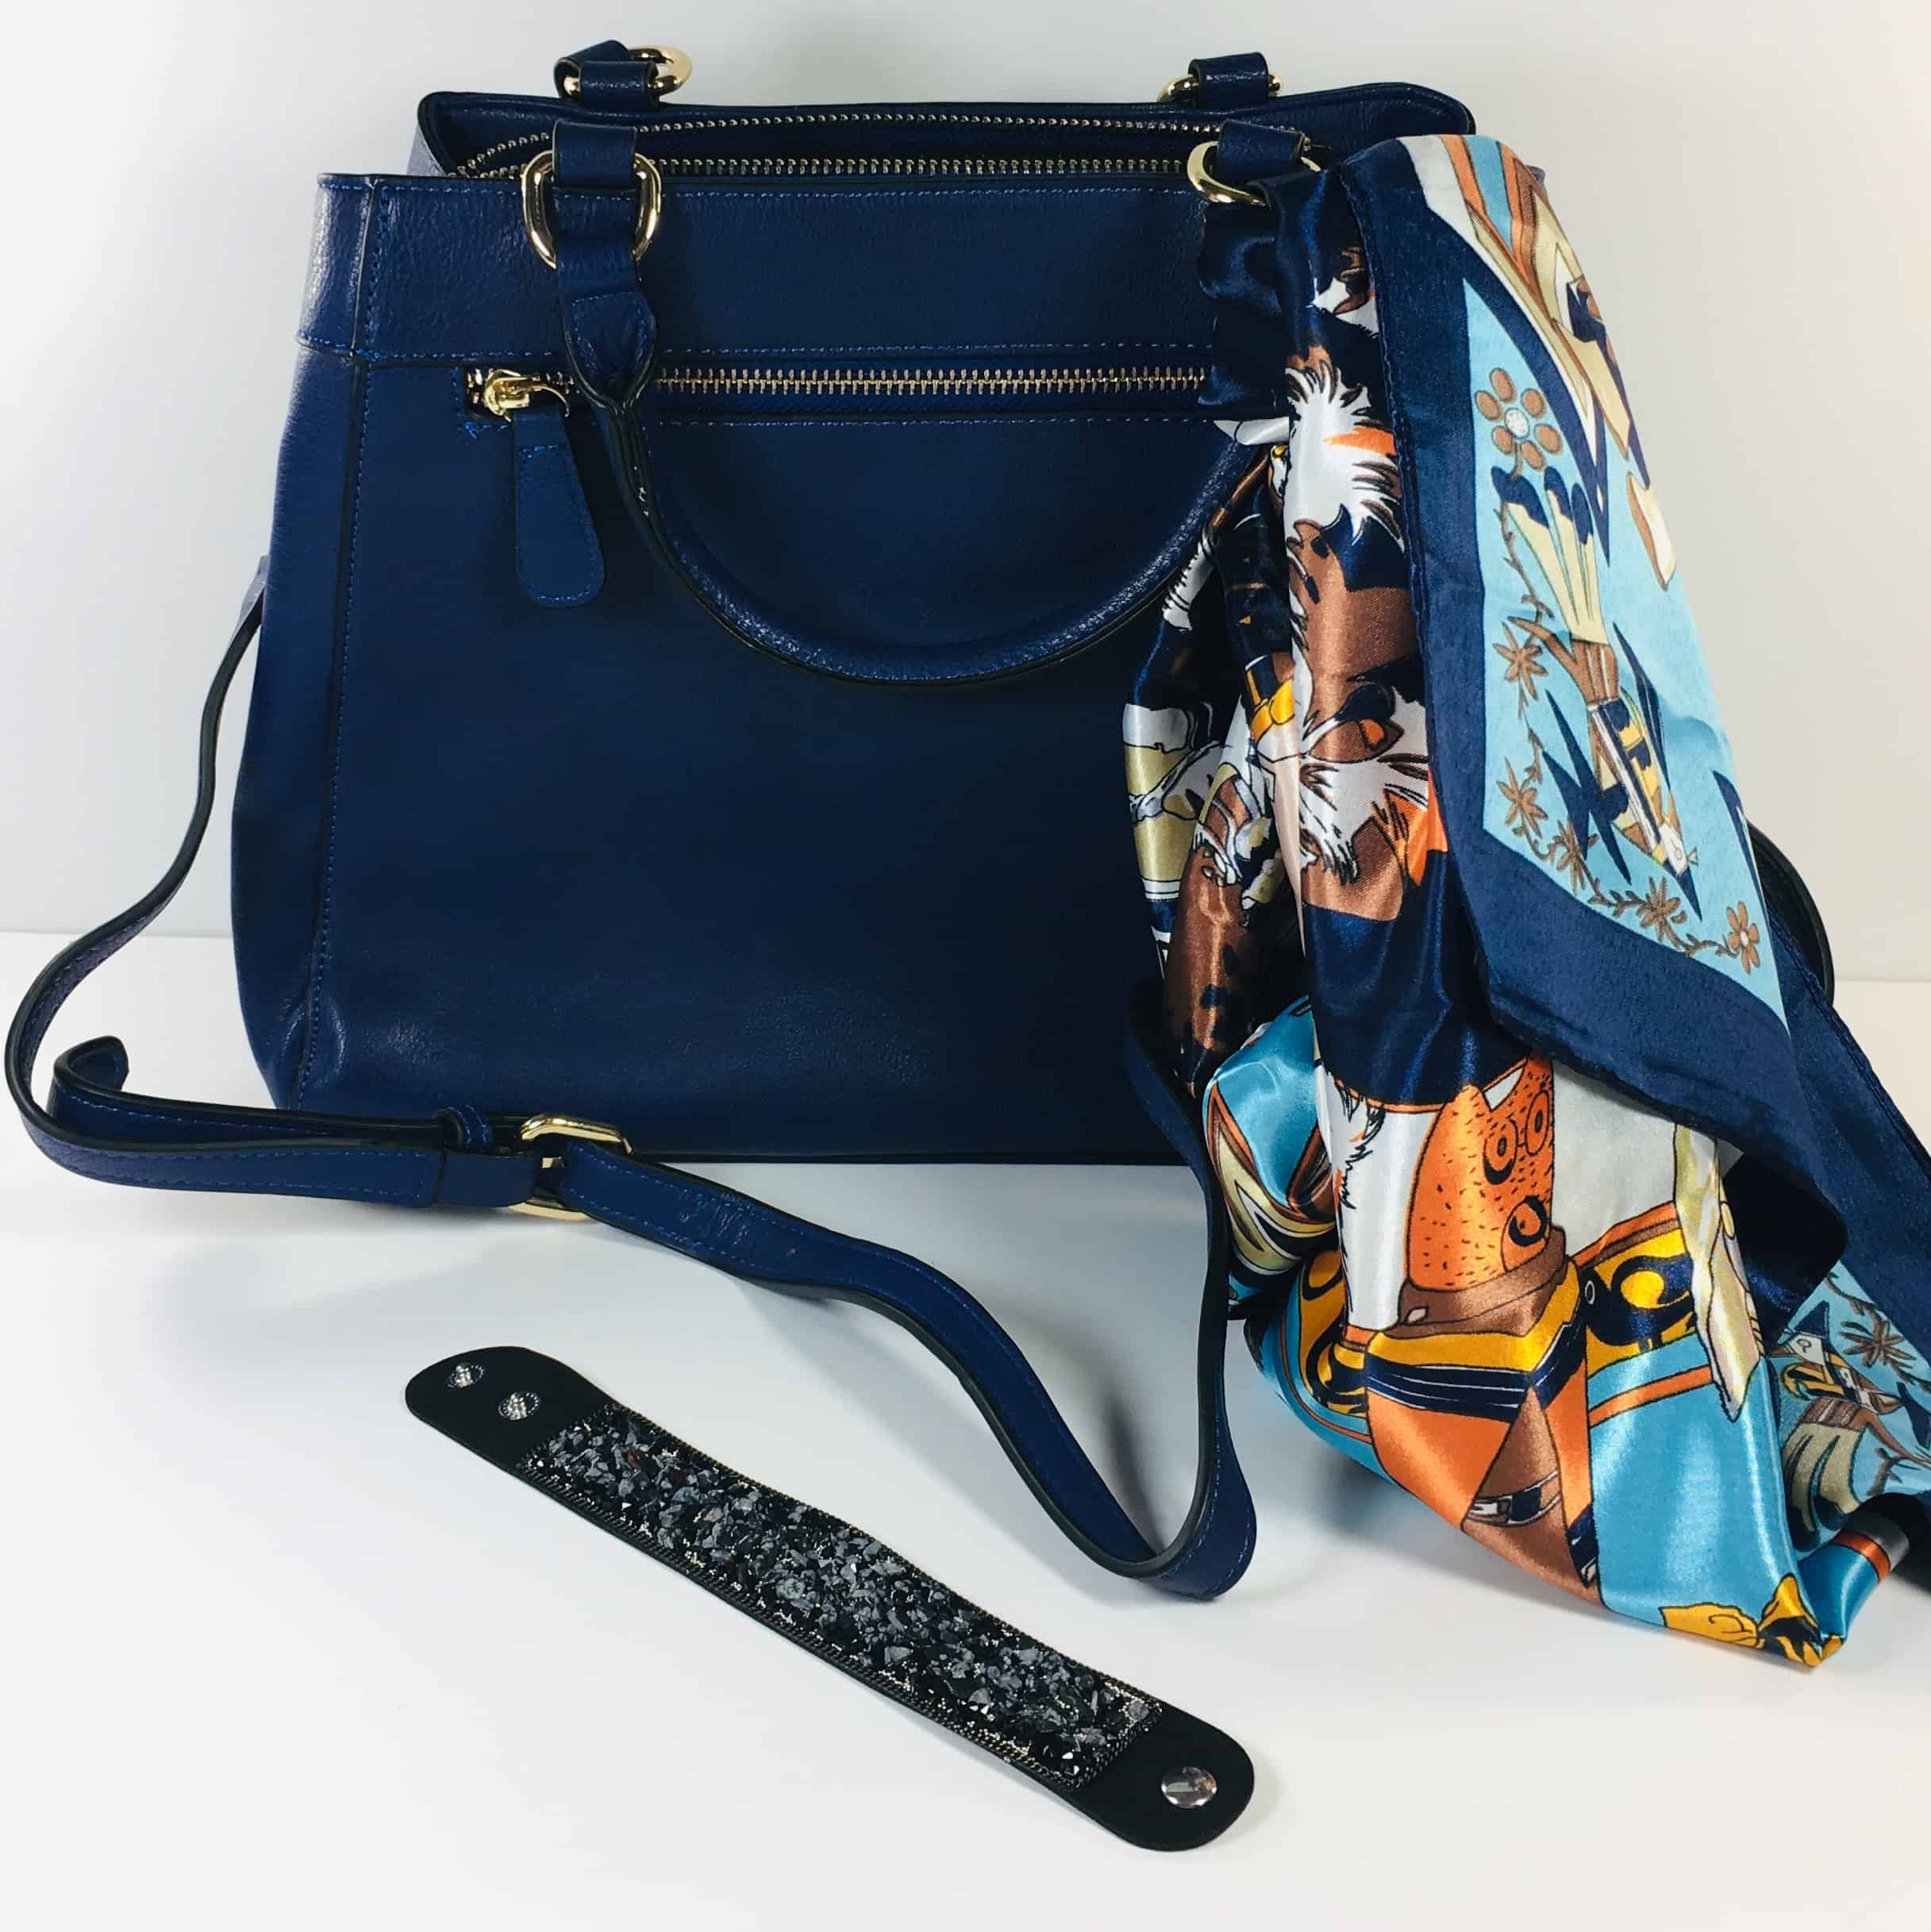 Bolzano Handbag of The Month November 2018 Subscription Box Review + Coupon!